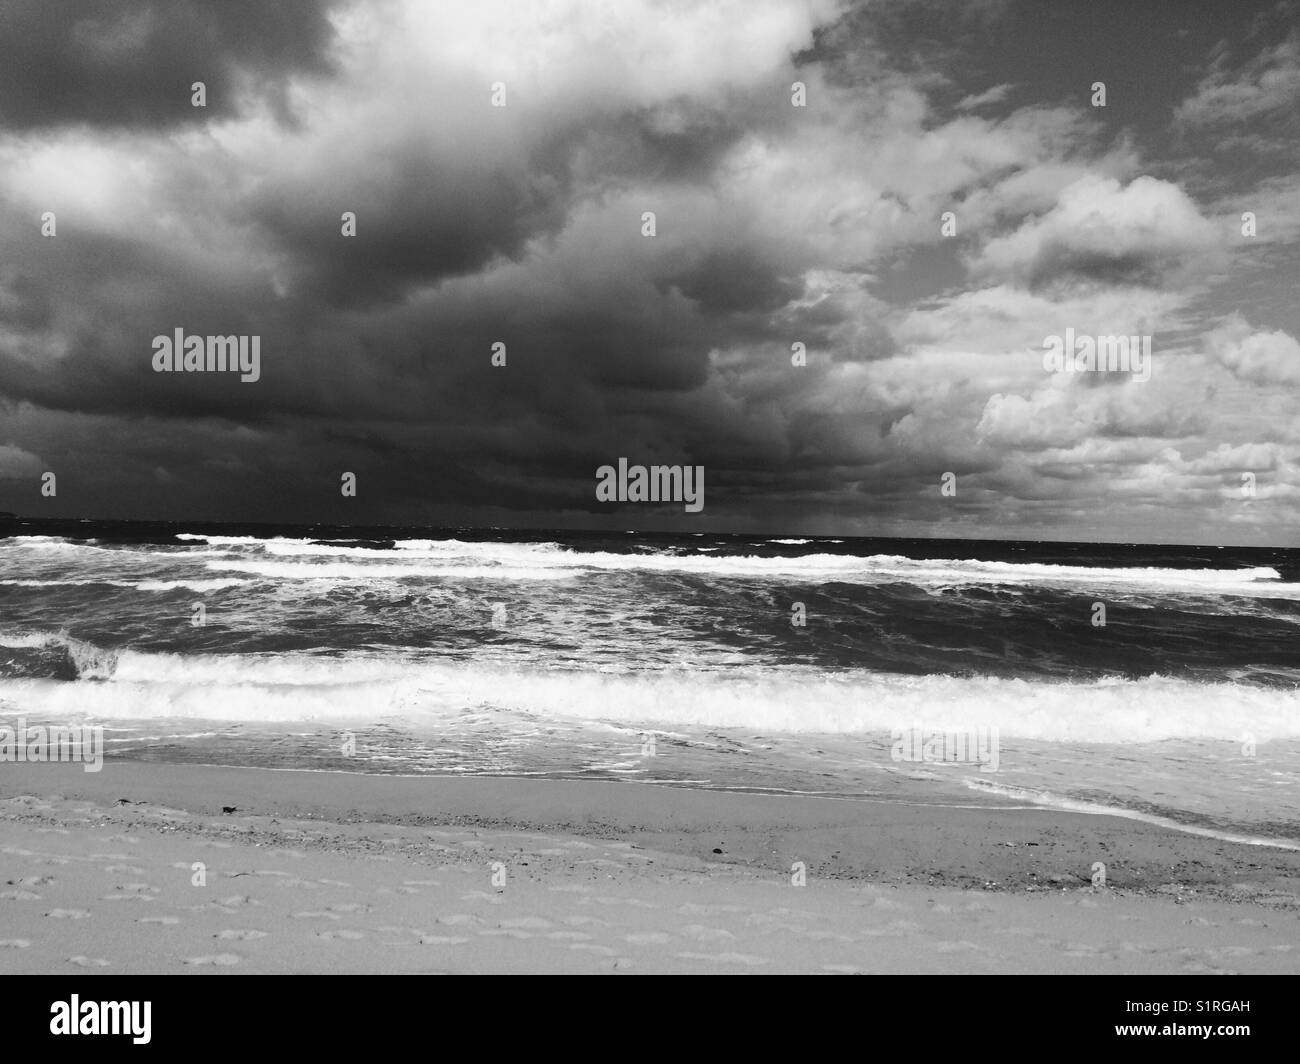 Squall incoming - Stock Image